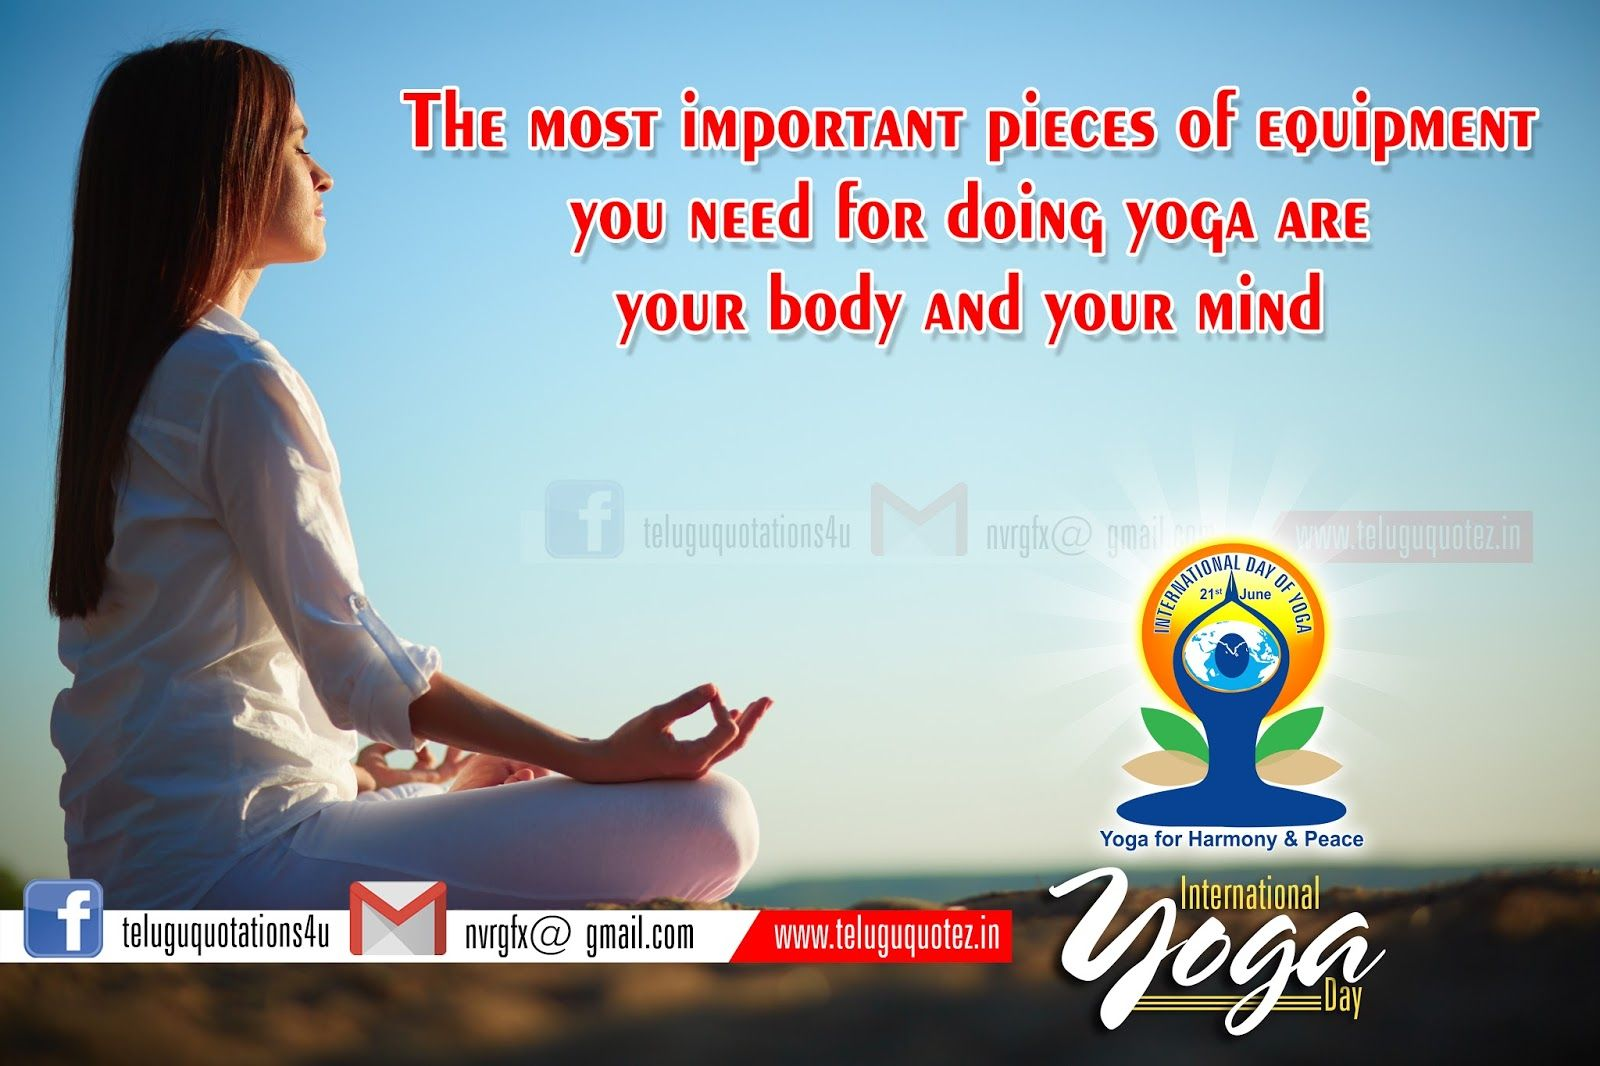 Yoga Inspirational Quotes And Sayings Hd Wallpapersyoga Day Postersyoga Slogansyoga Meditation Greetings For Facebookfamous On